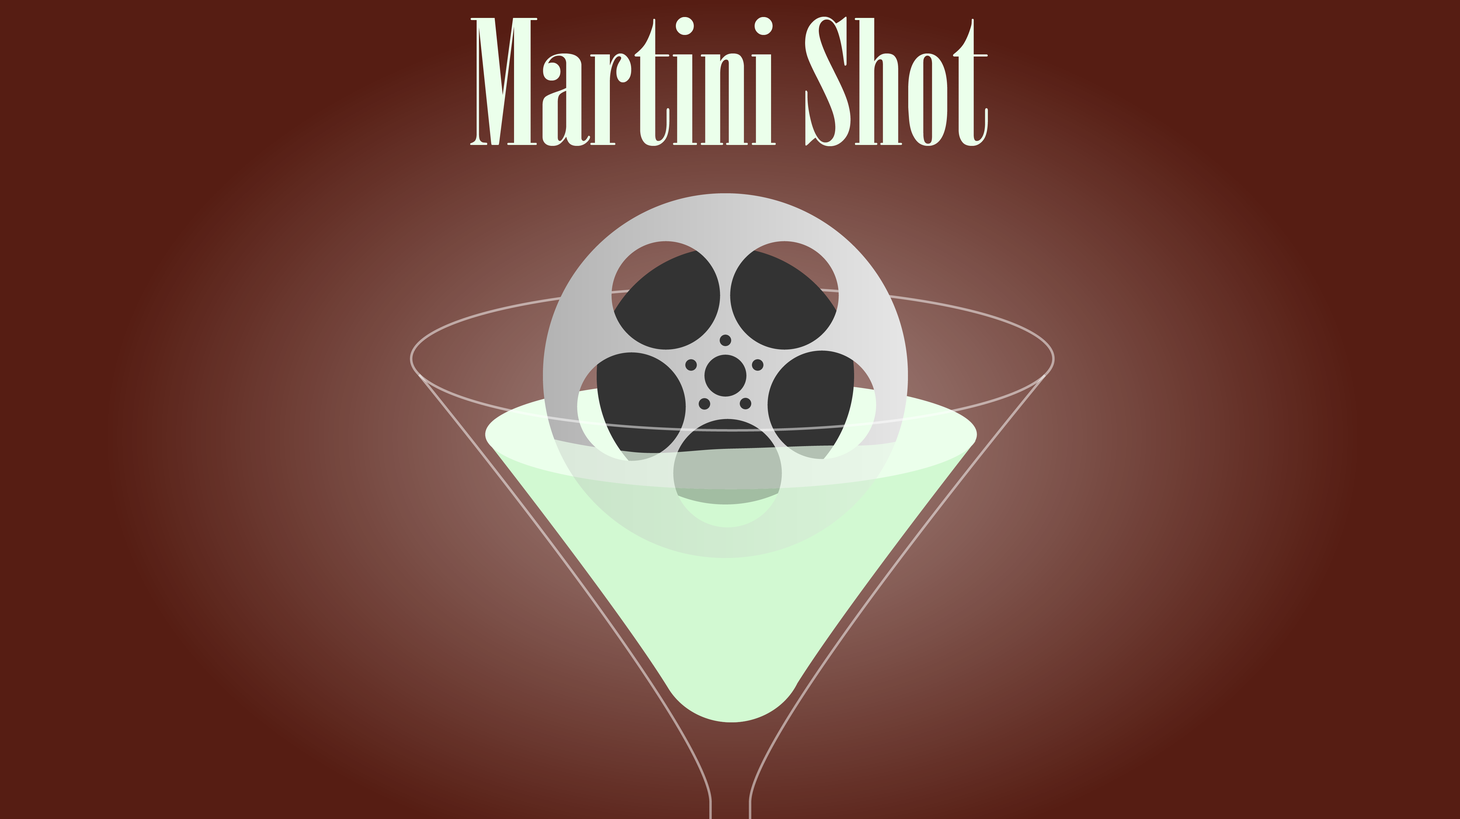 This is Rob Long and on today's Martini Shot, I try to figure out how YouTube madefifteen billion dollars, and how to handle breaking up with my barber. They are deeply linked, Ipromise.